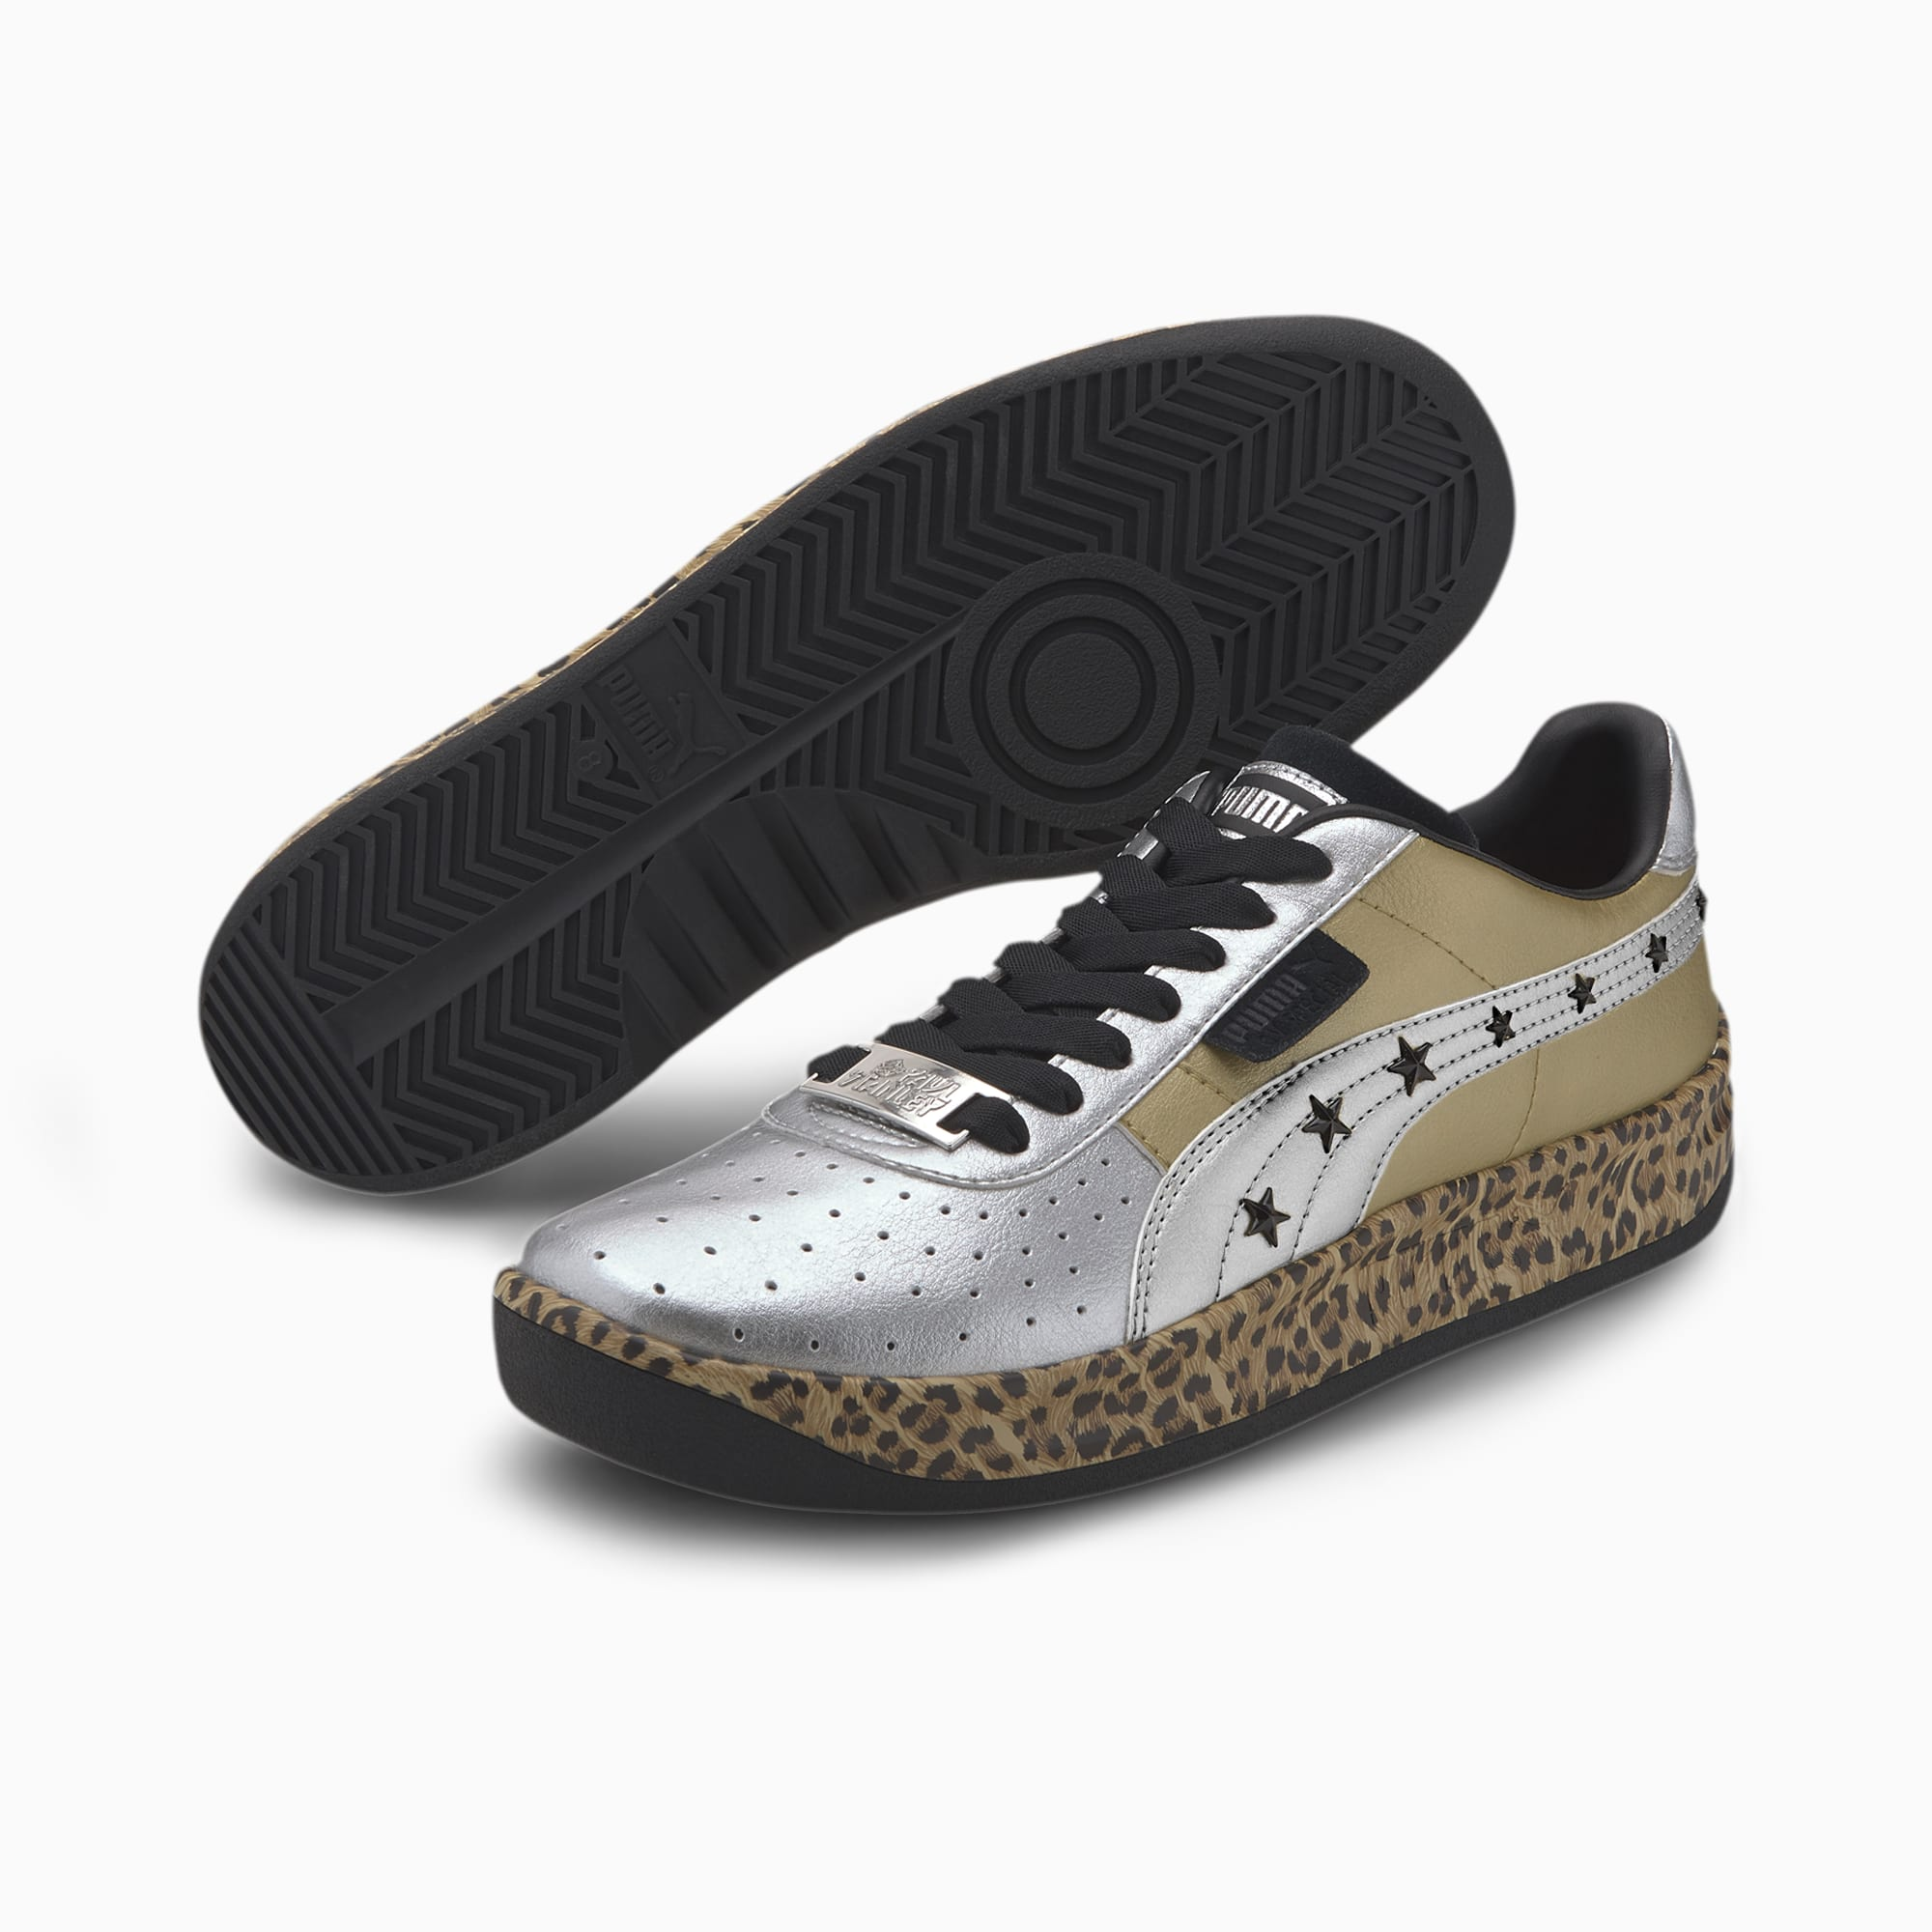 GV Special Leopard x Paul Stanley Trainers